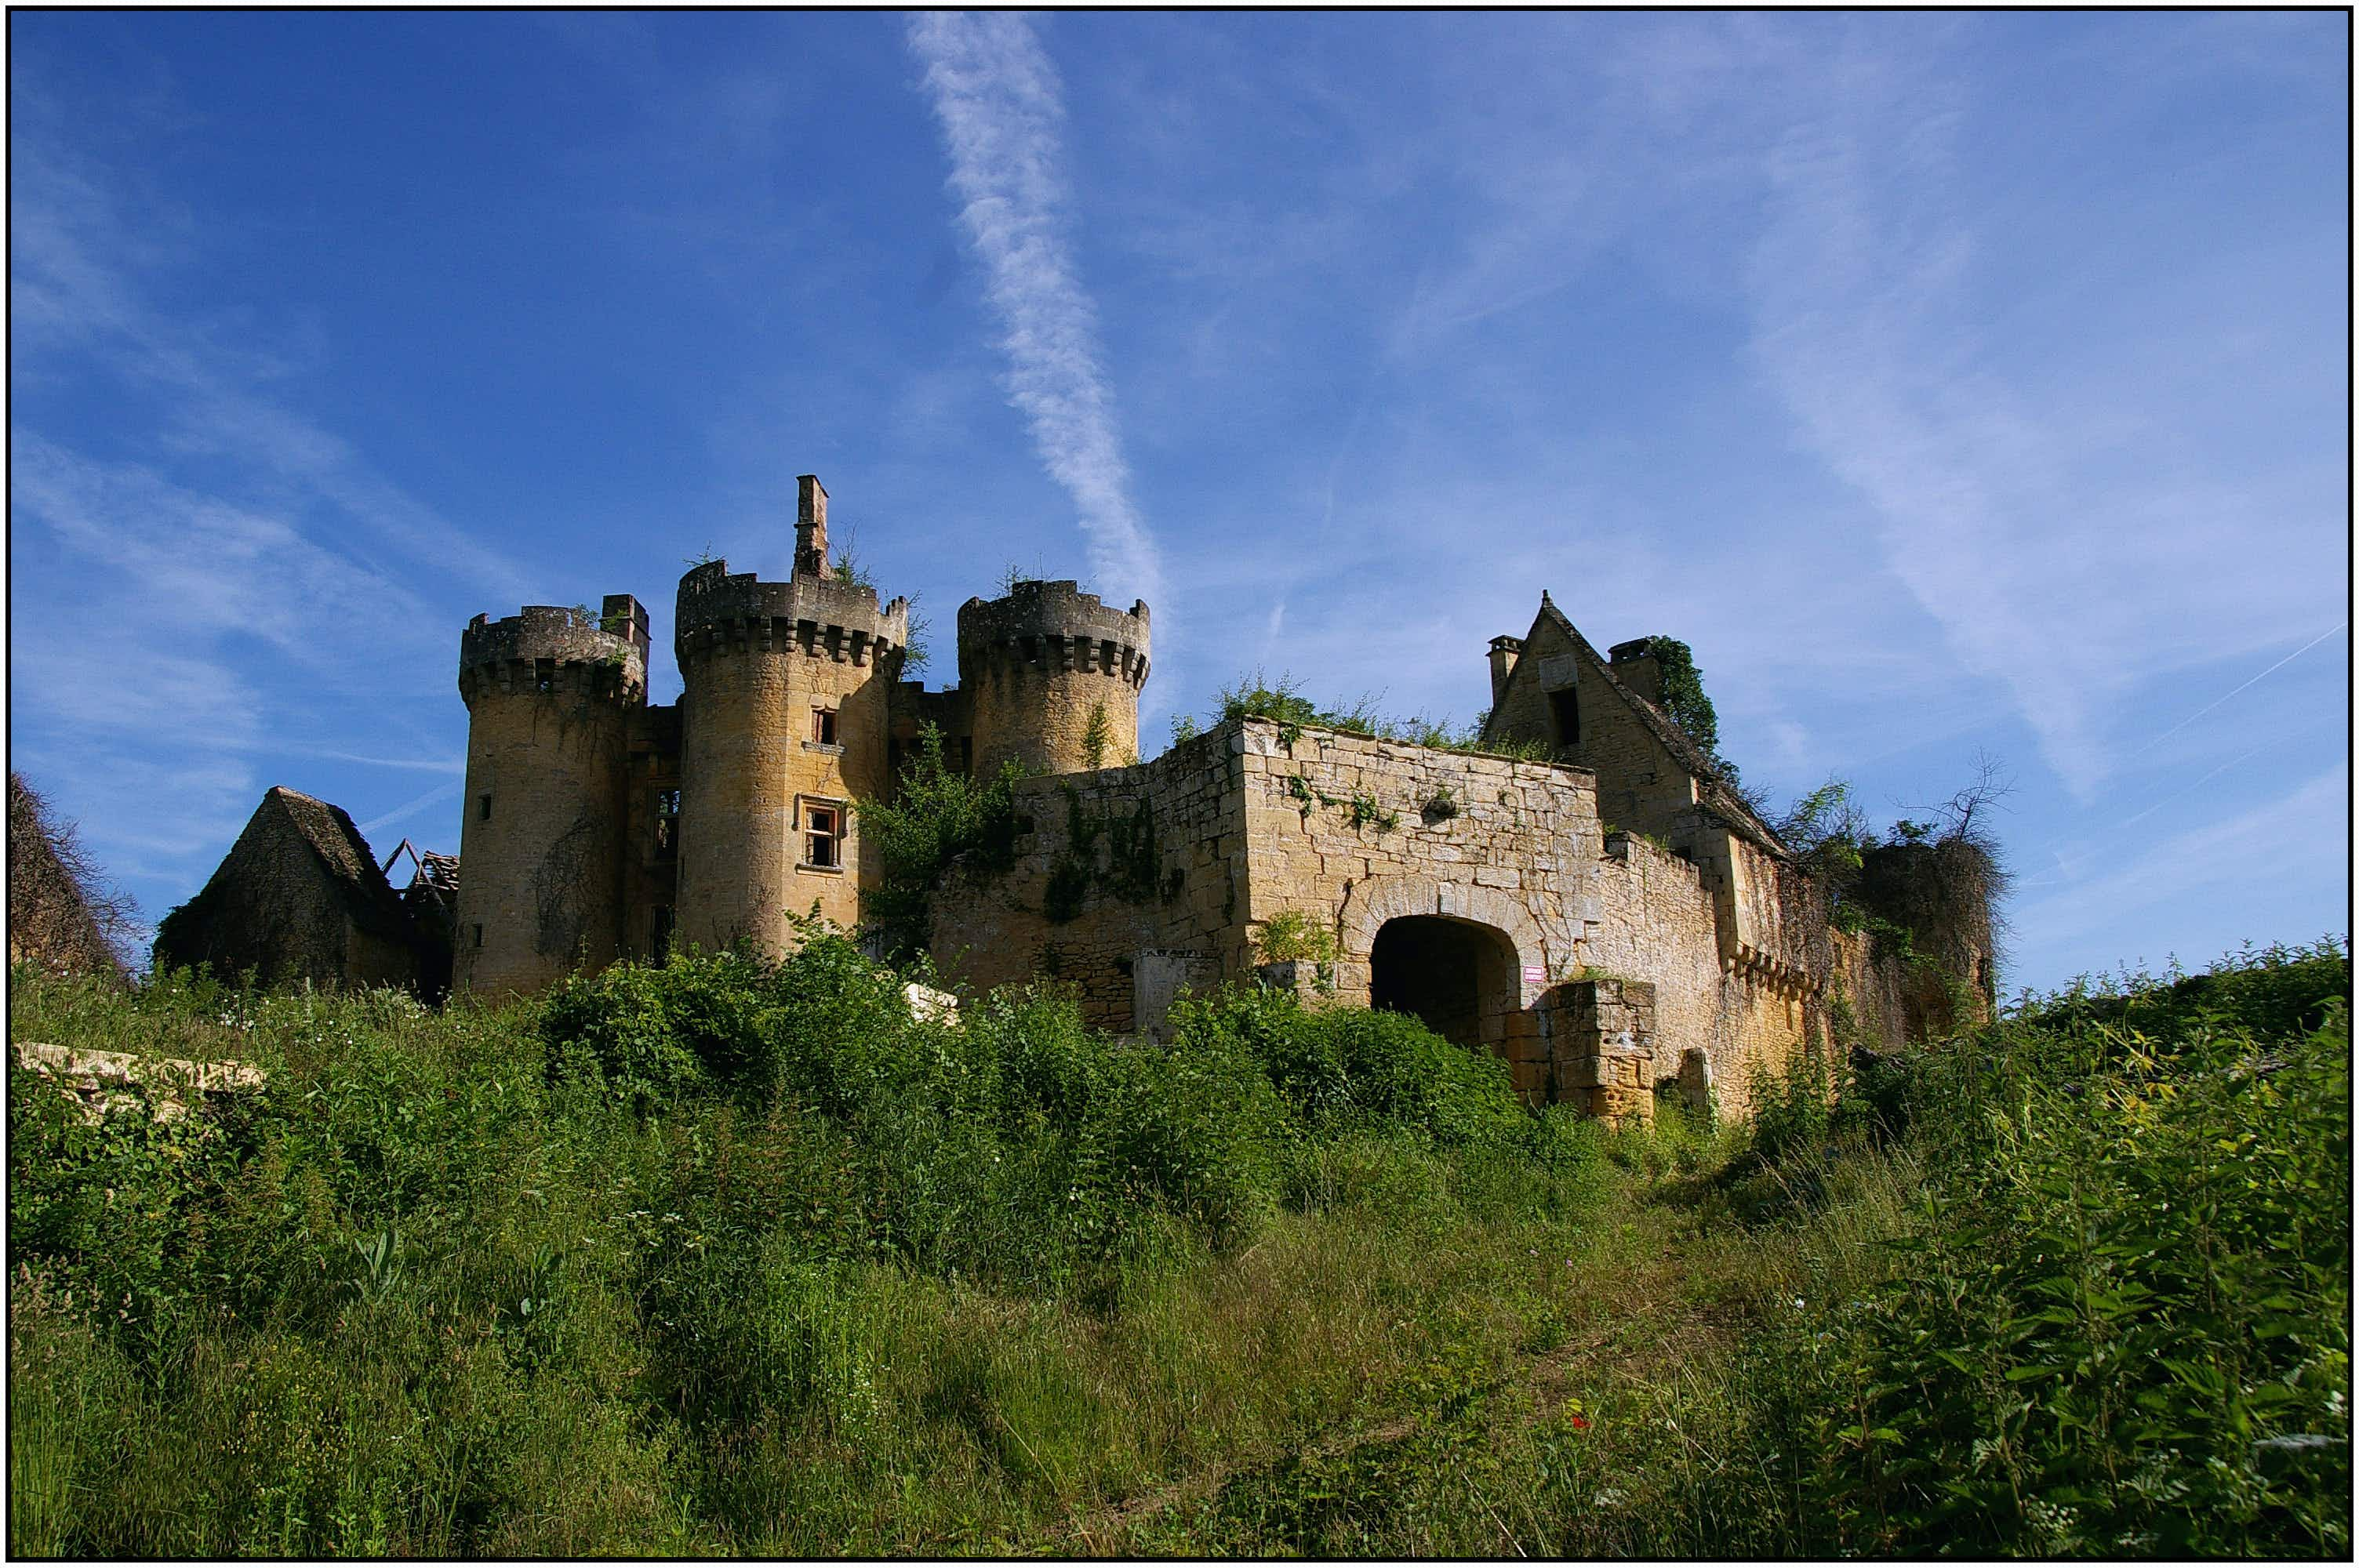 Now is your chance to adopt an historic French castle with a colourful past for just €50